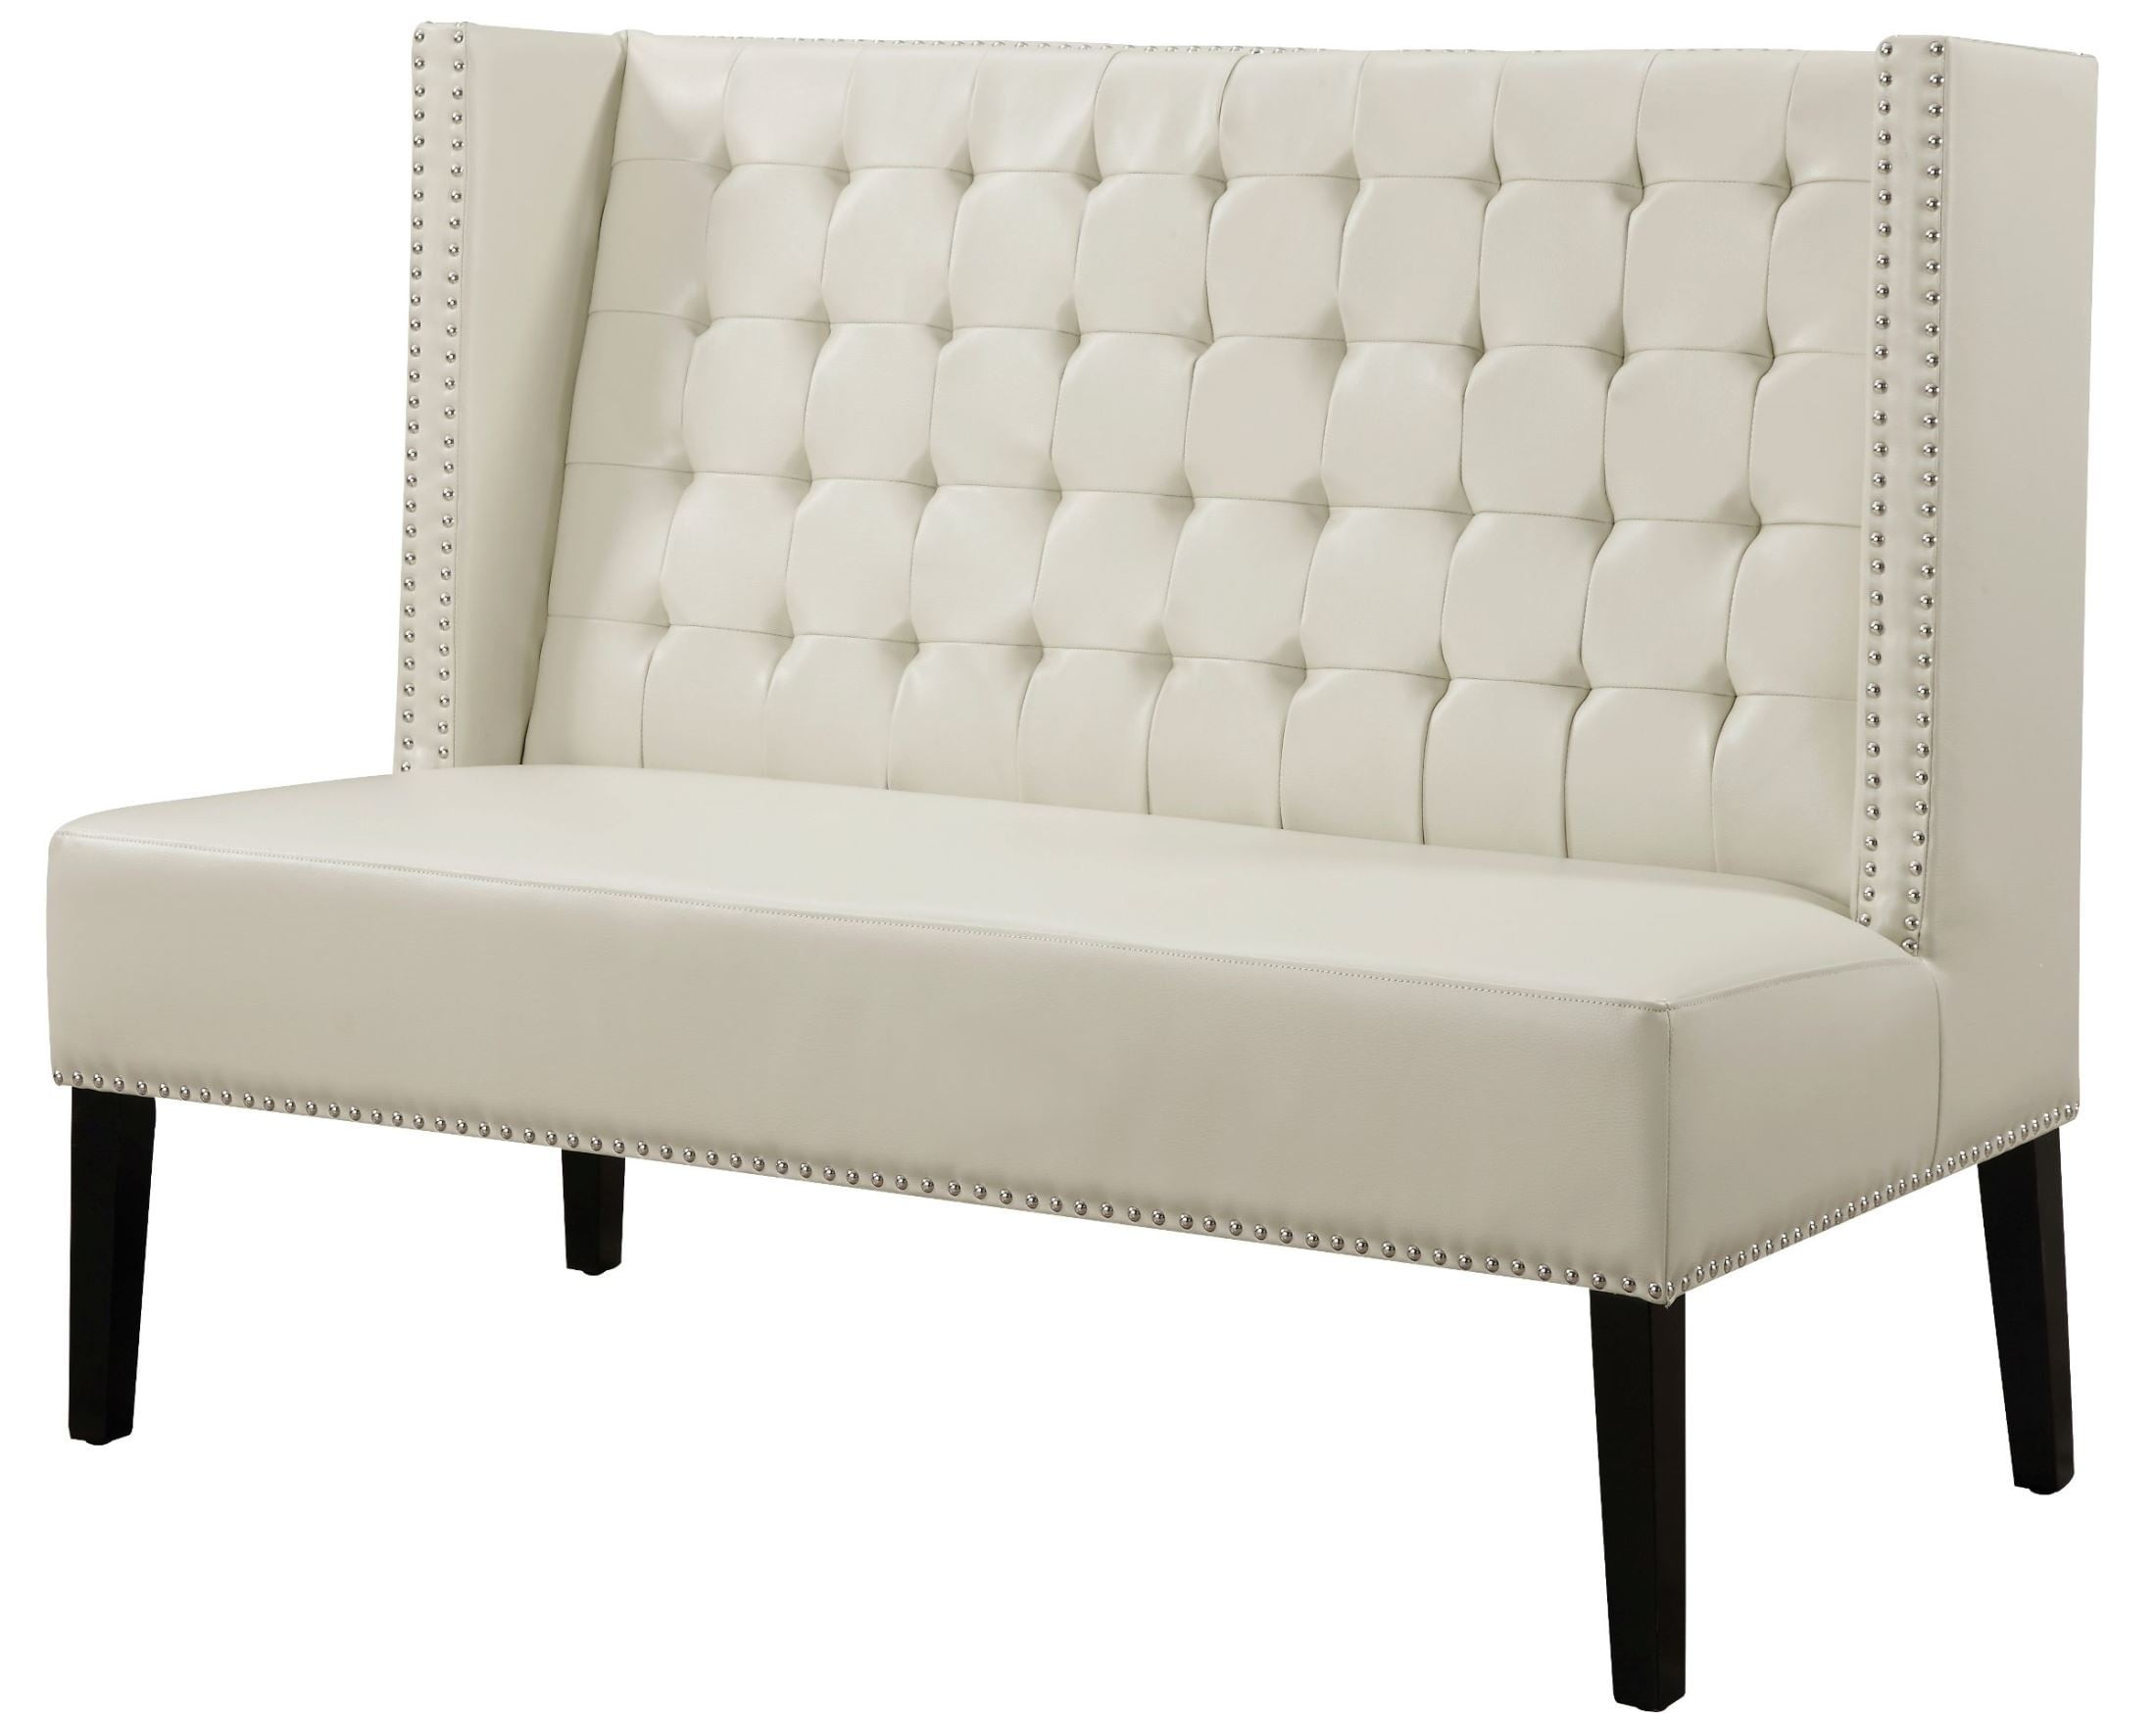 halifax cream leather banquette bench from tov 63115 cream coleman furniture. Black Bedroom Furniture Sets. Home Design Ideas